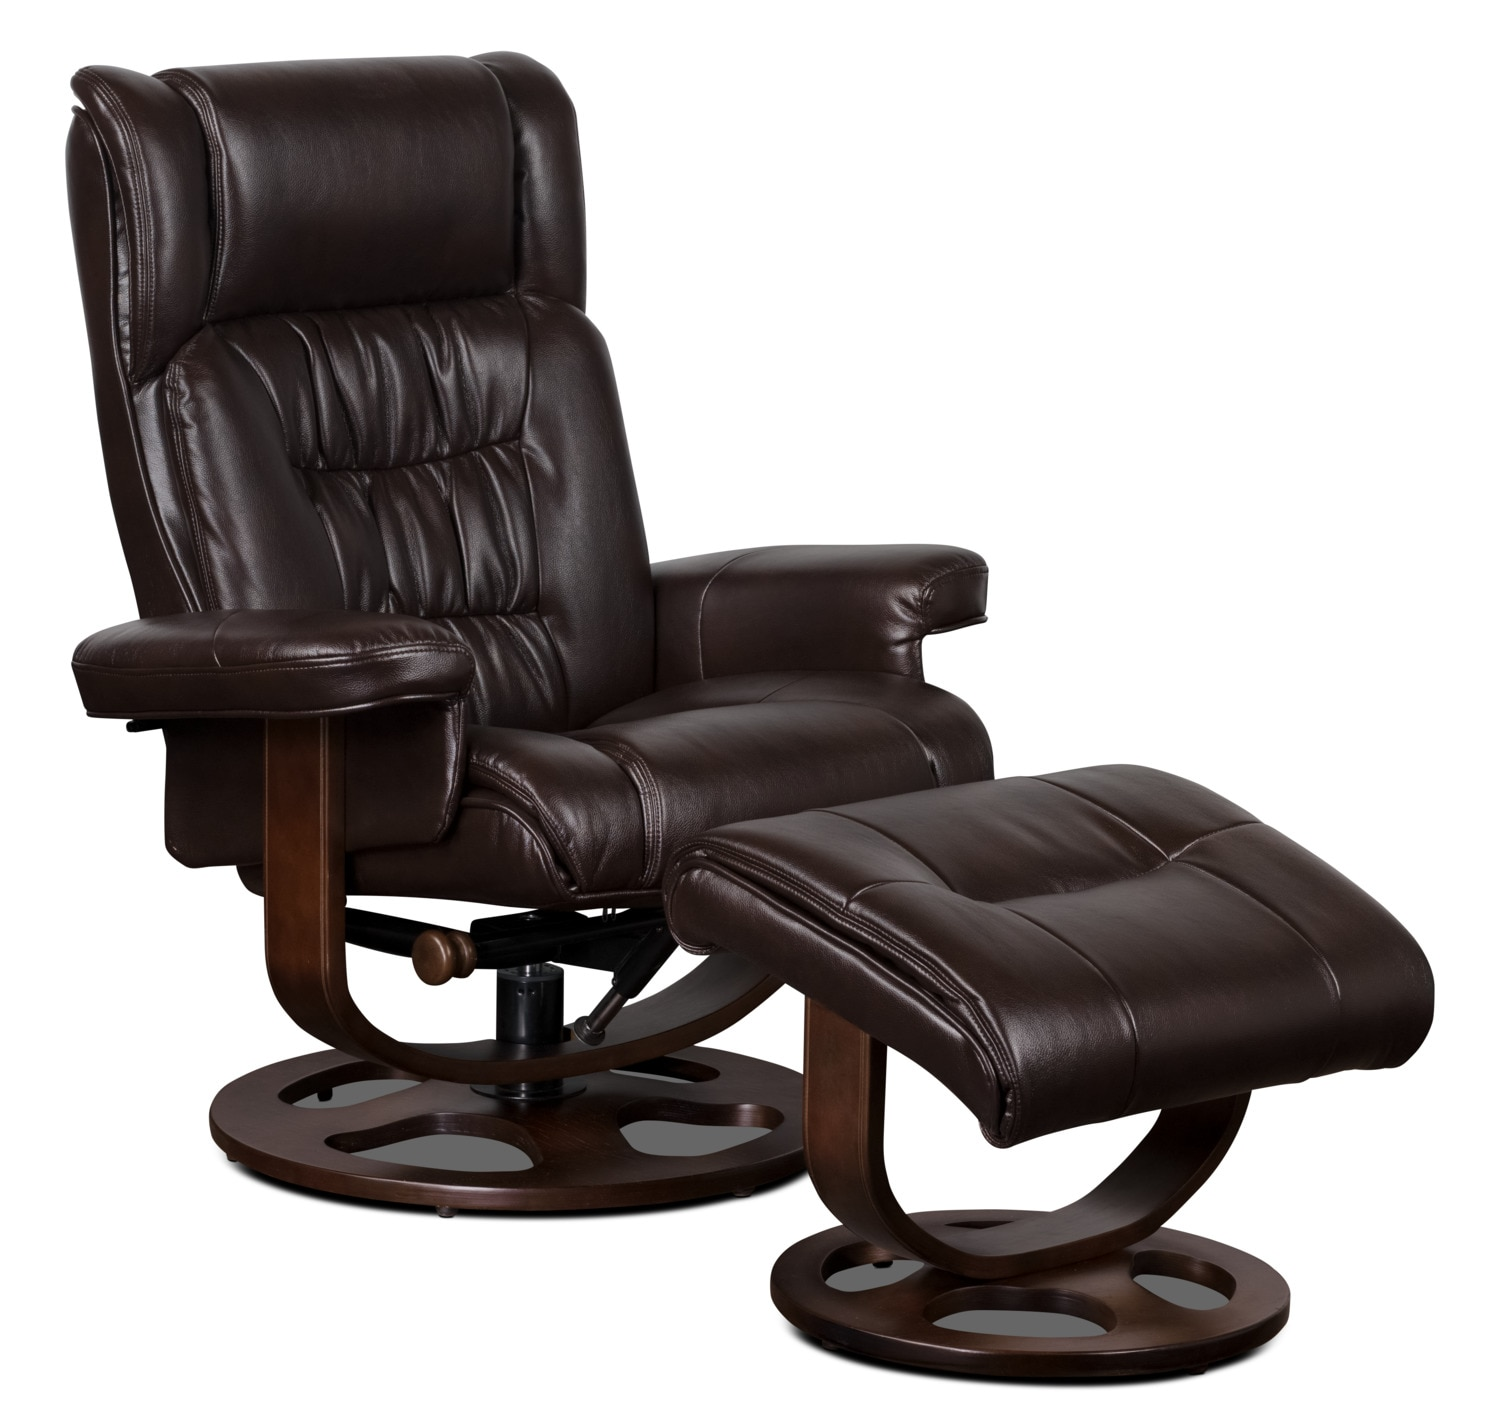 Leather Recliner Chairs Benji Leather Look Fabric Swivel Reclining Chair With